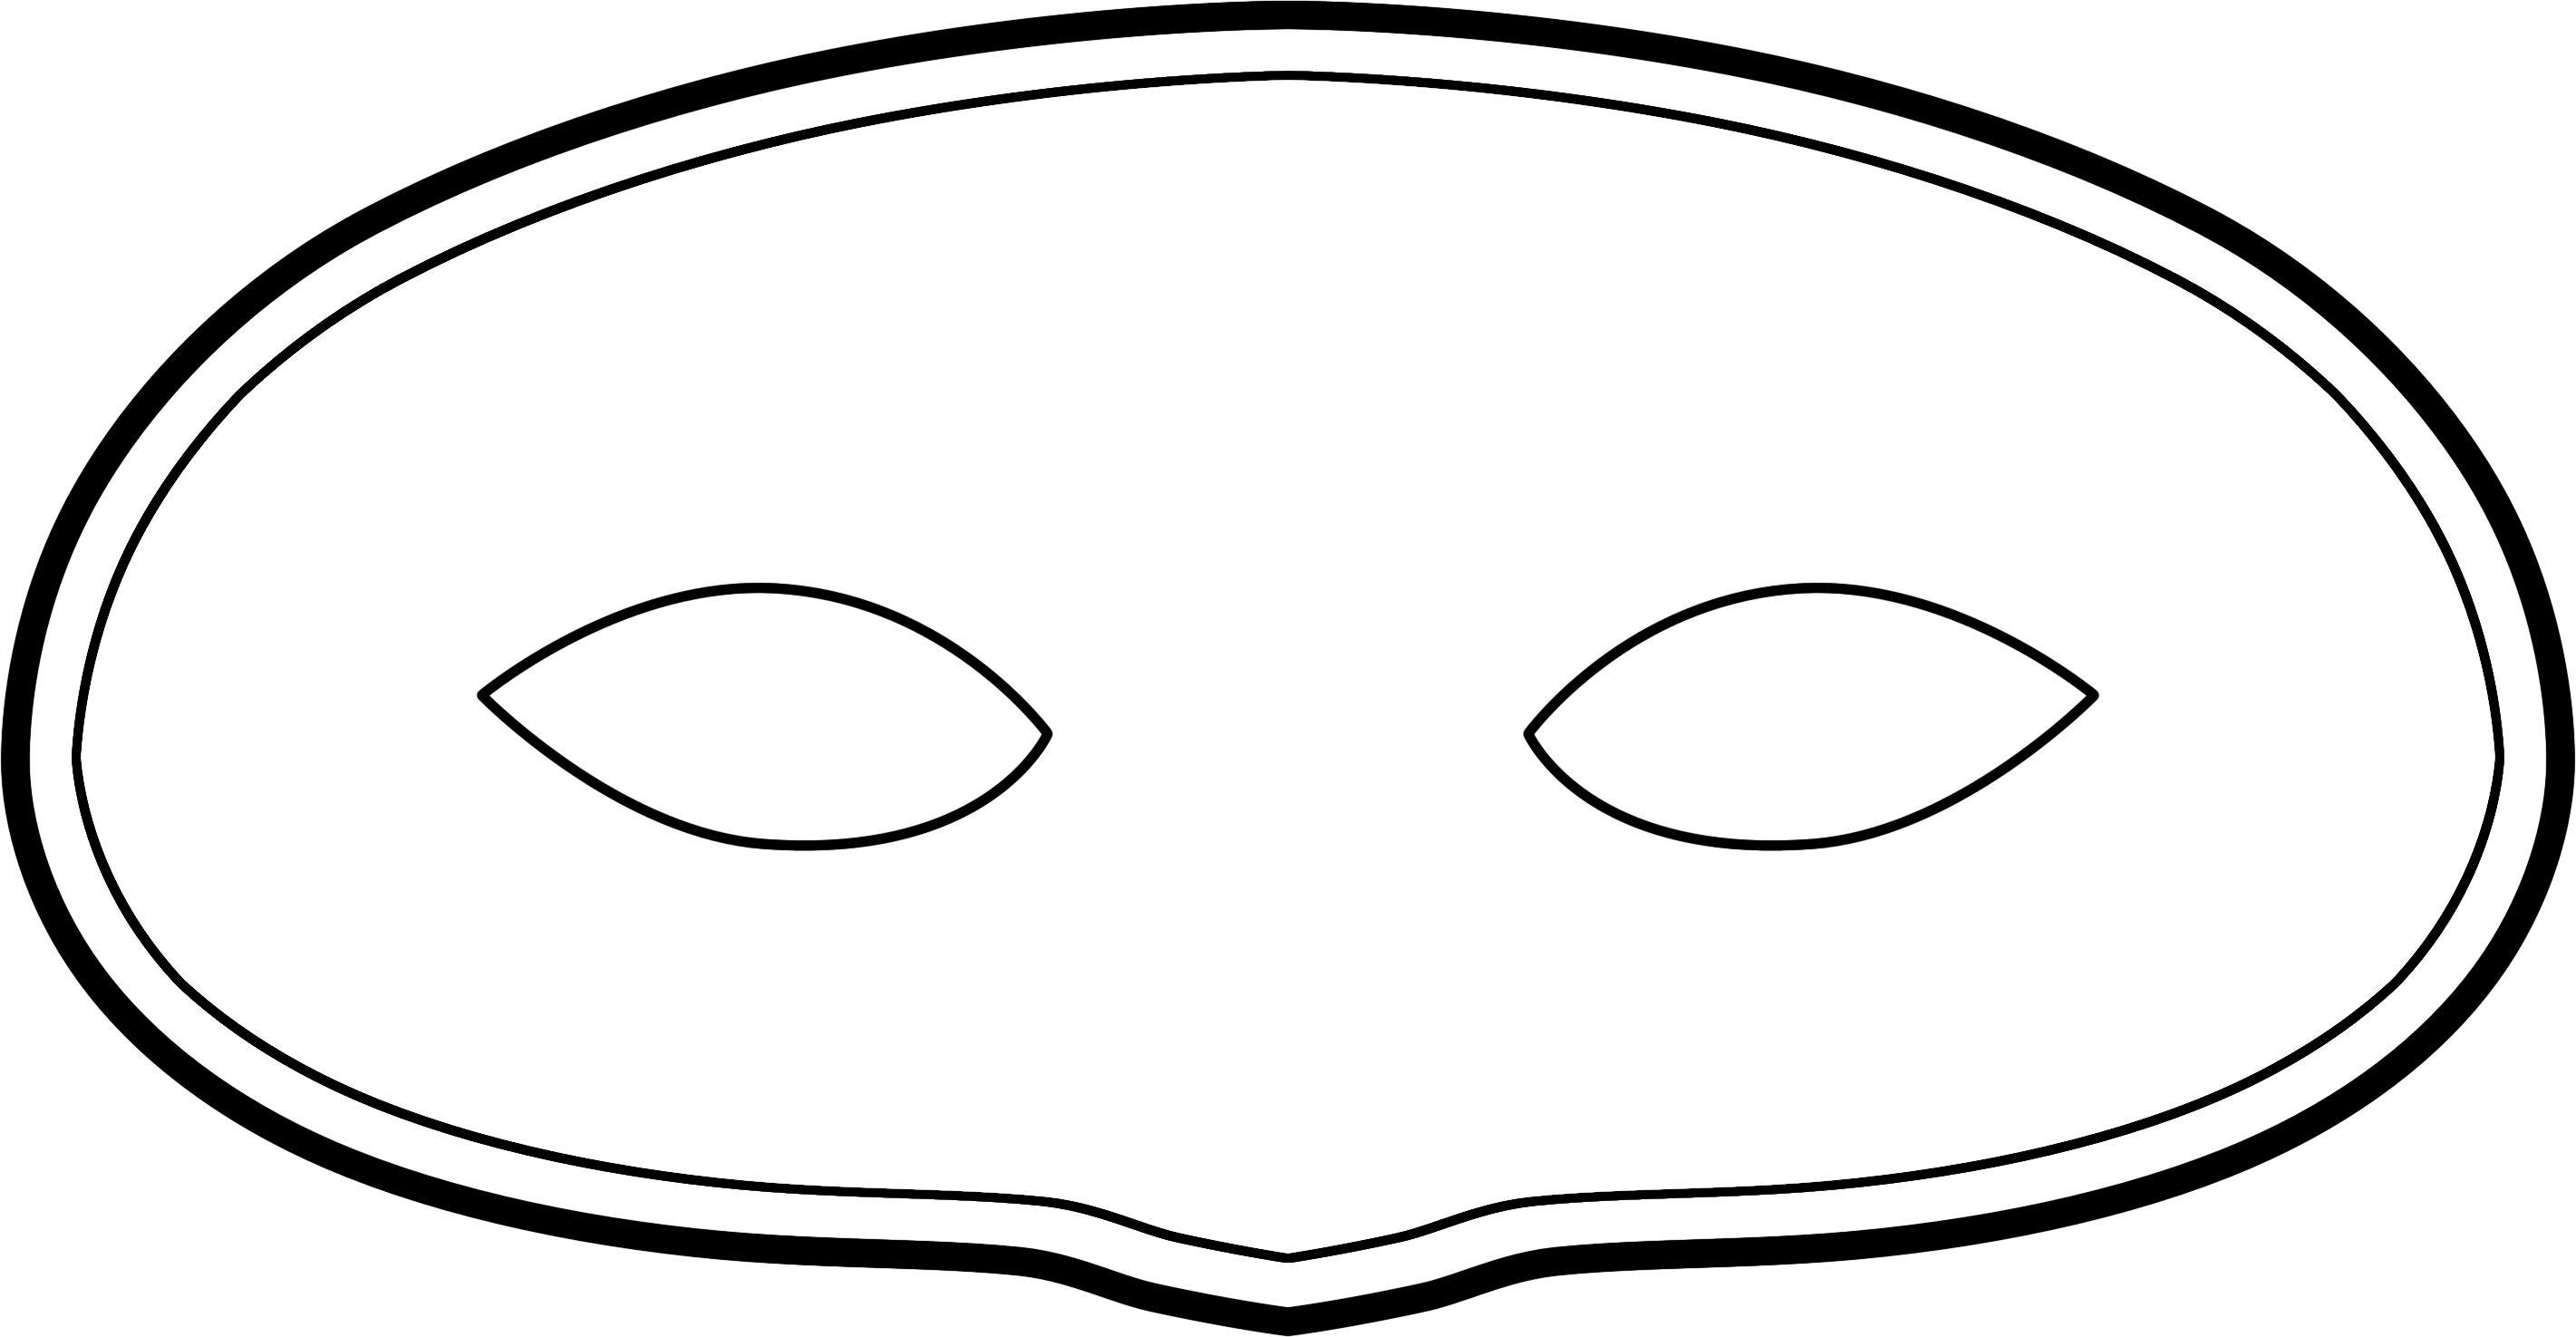 Grinch Clipart Cut Out Mask Grinch Cut Out Mask